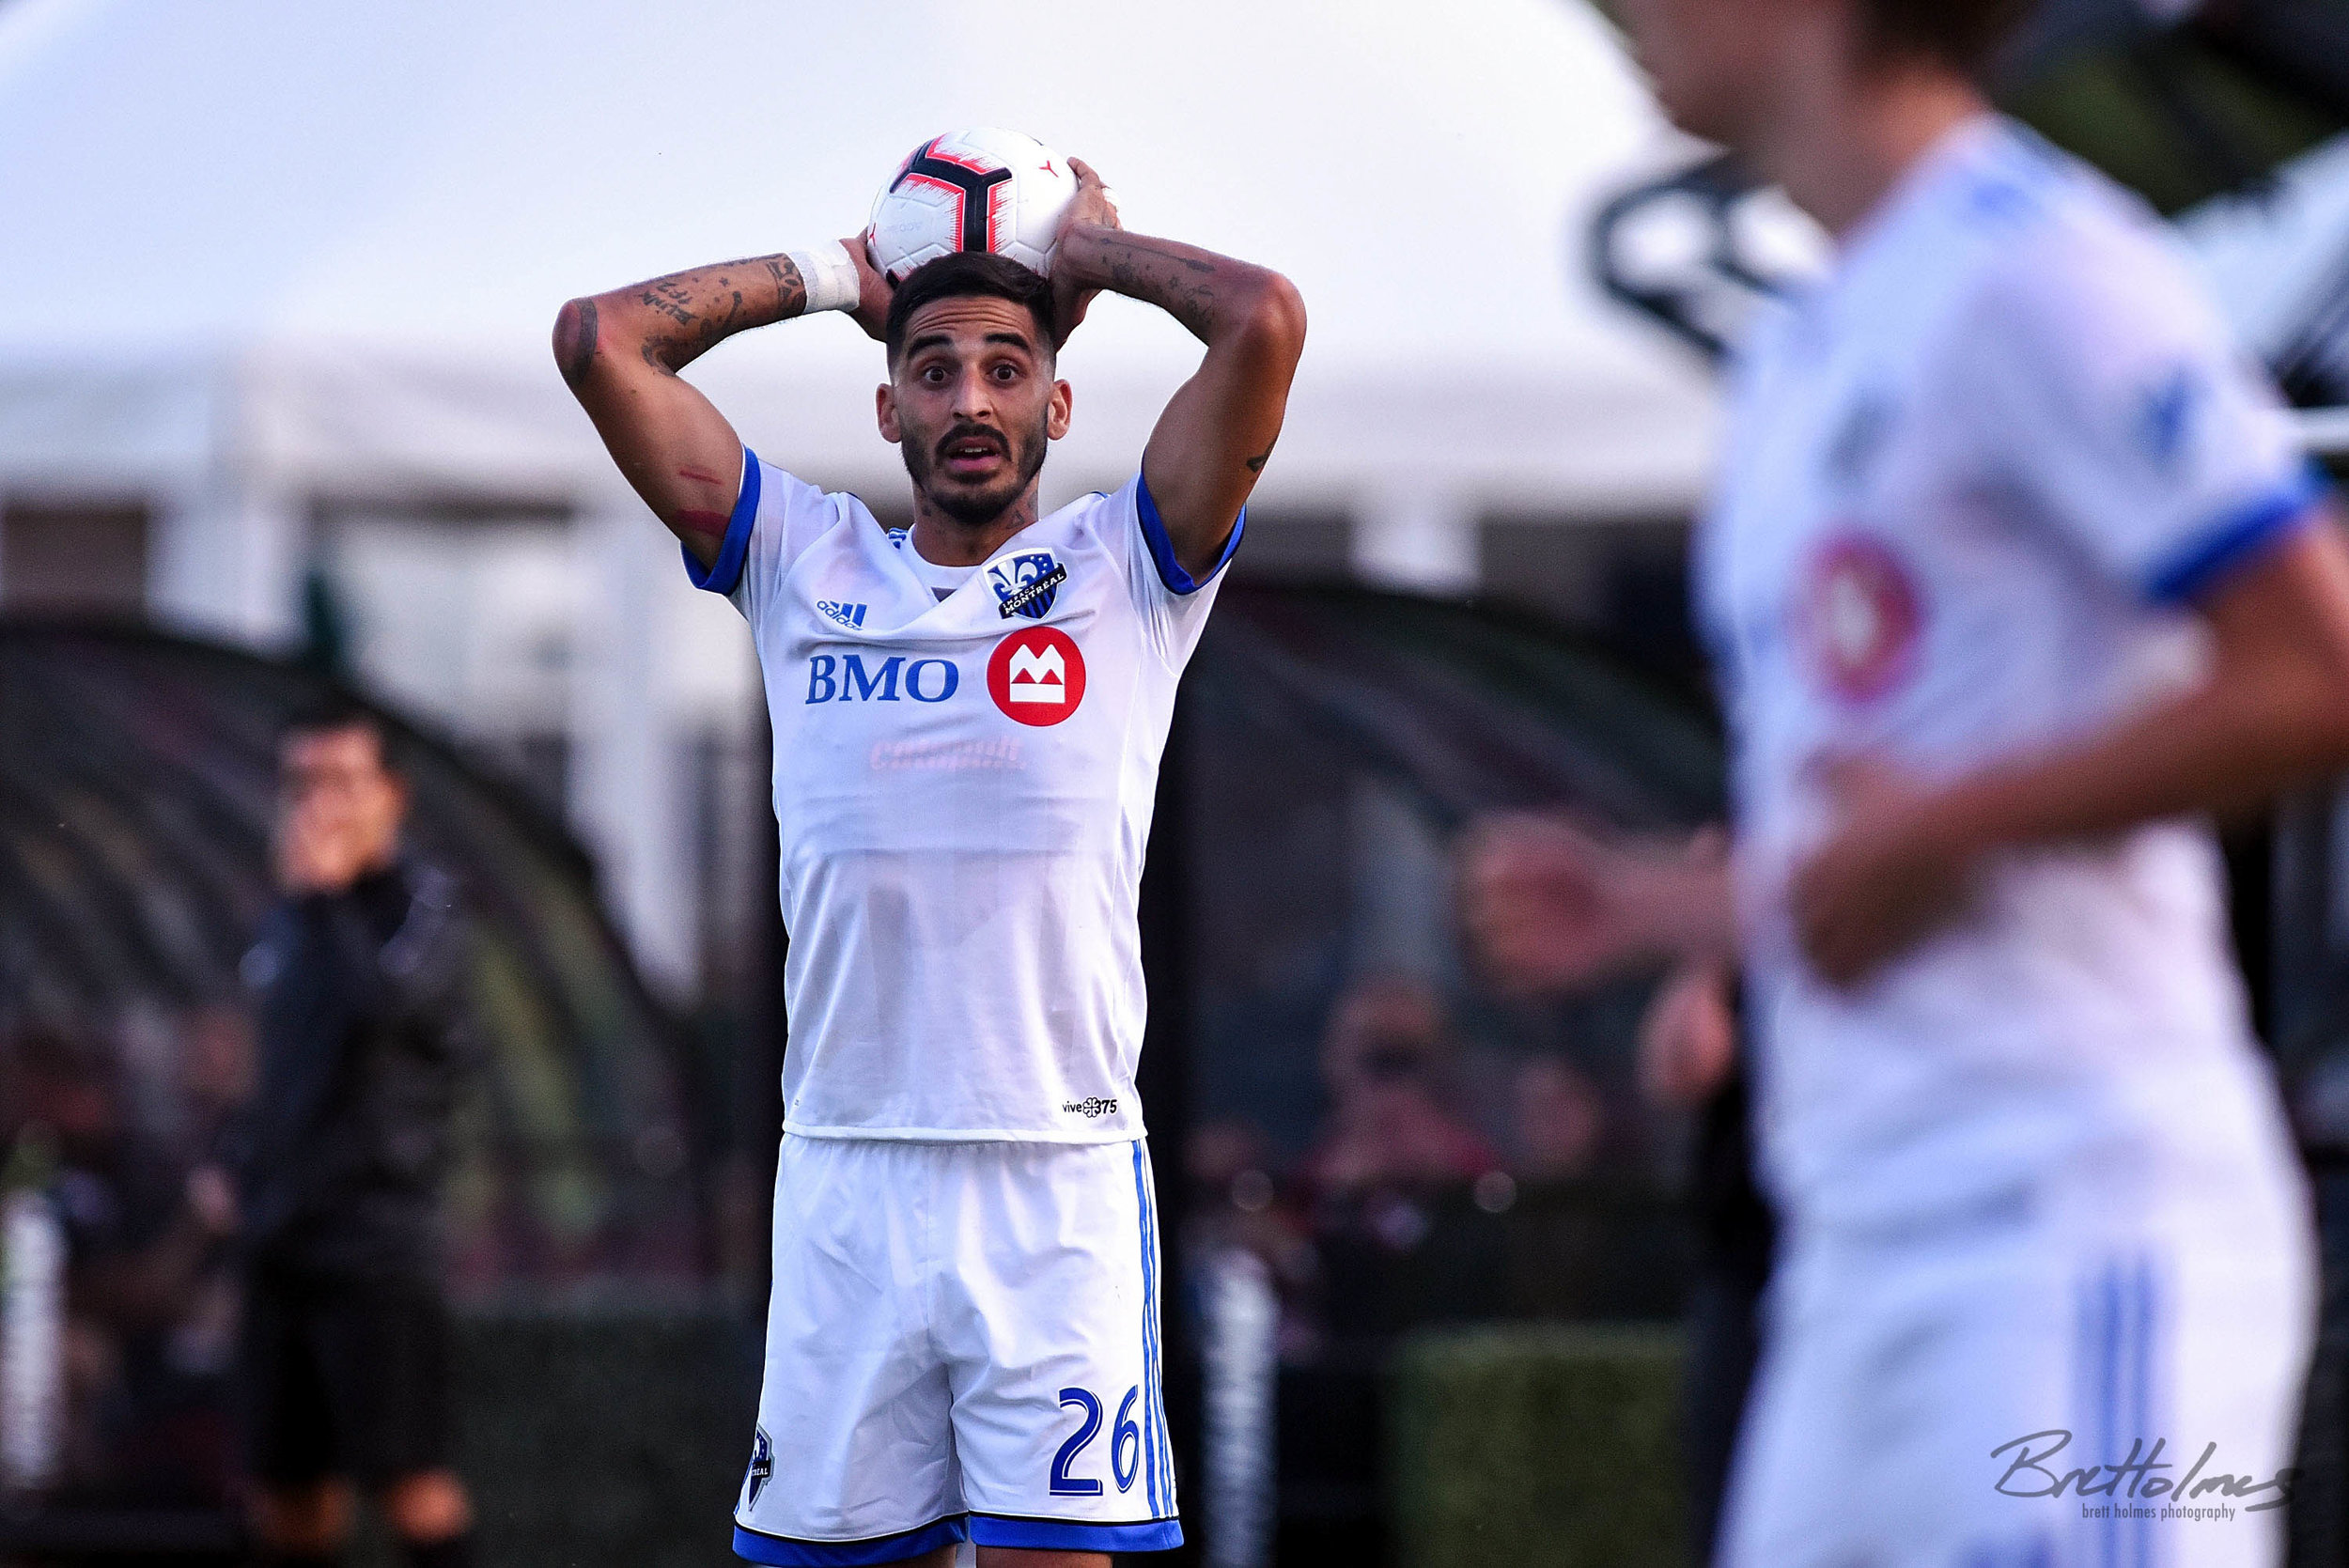 CALGARY, AB - AUGUST 14: Montreal Impact defender Jorge Corrales (26) prepares for a throw-in during the first half of the second leg of a Canadian Championship semifinal match between the Montreal Impact and Cavalry FC on August 14, 2019, at ATCO Field at Spruce Meadows in Calgary, AB. (Photo by Brett Holmes/Icon Sportswire)